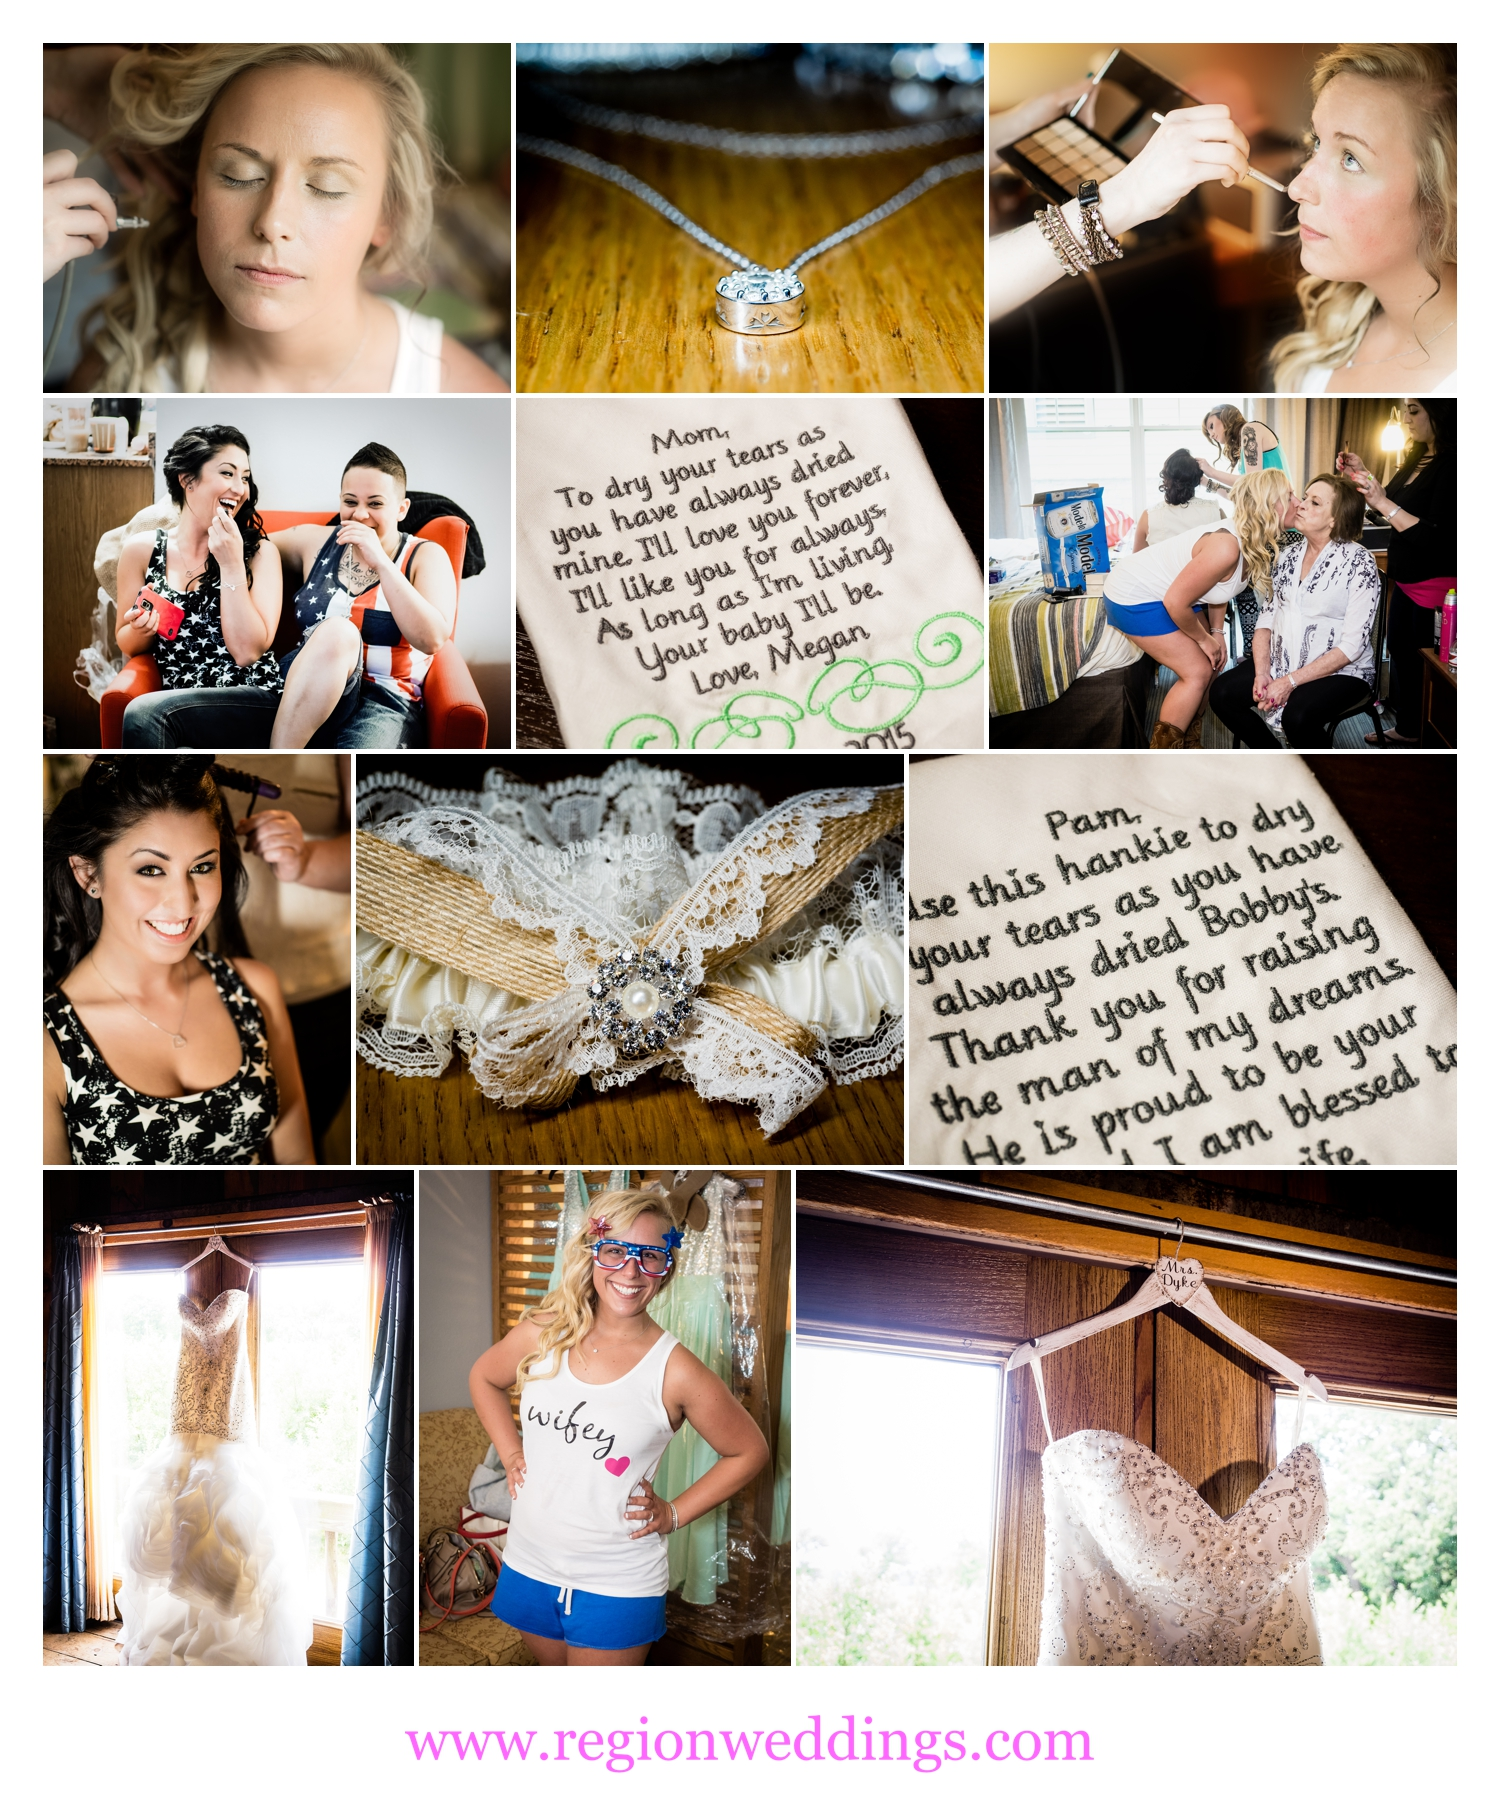 Bride and bridesmaids get ready on wedding day at County Line Orchard.